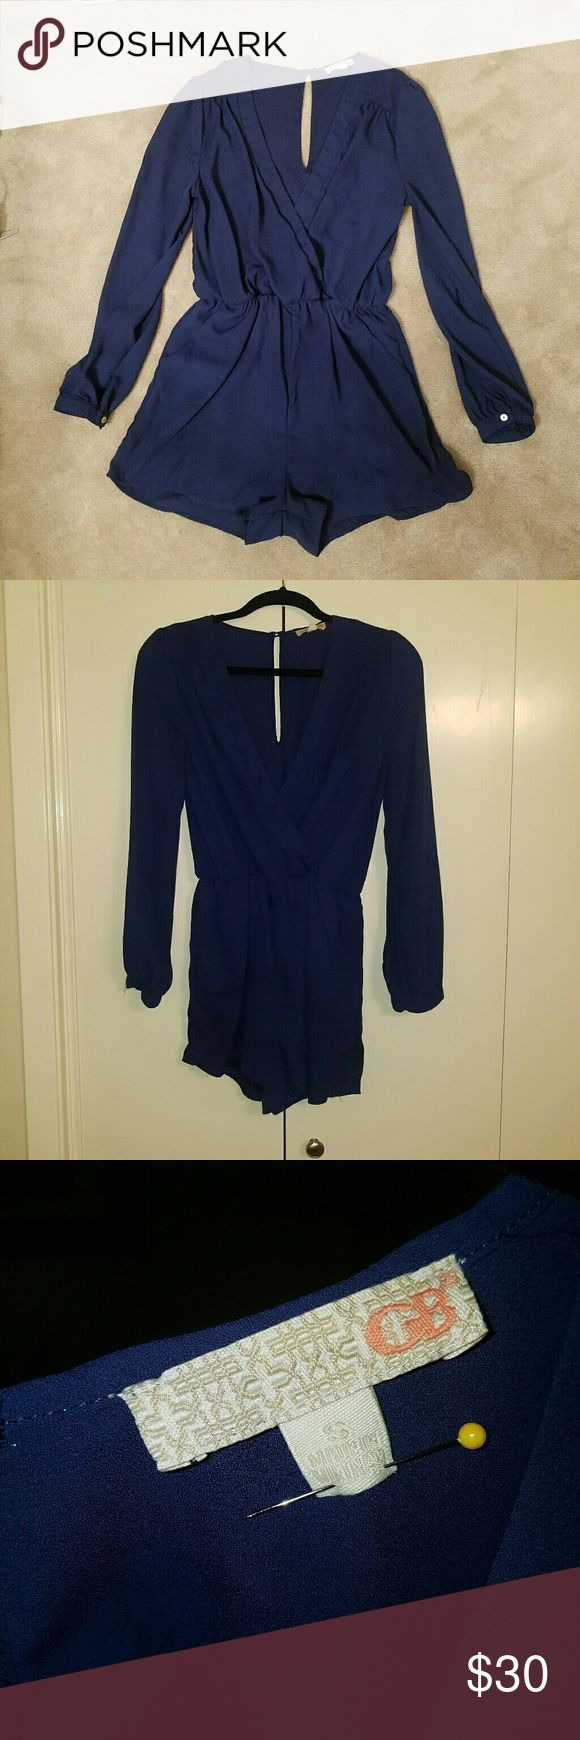 Gianni Bini Navy BLUE Romper Size Small EUC!  Worn once! Gianni Bini Shorts